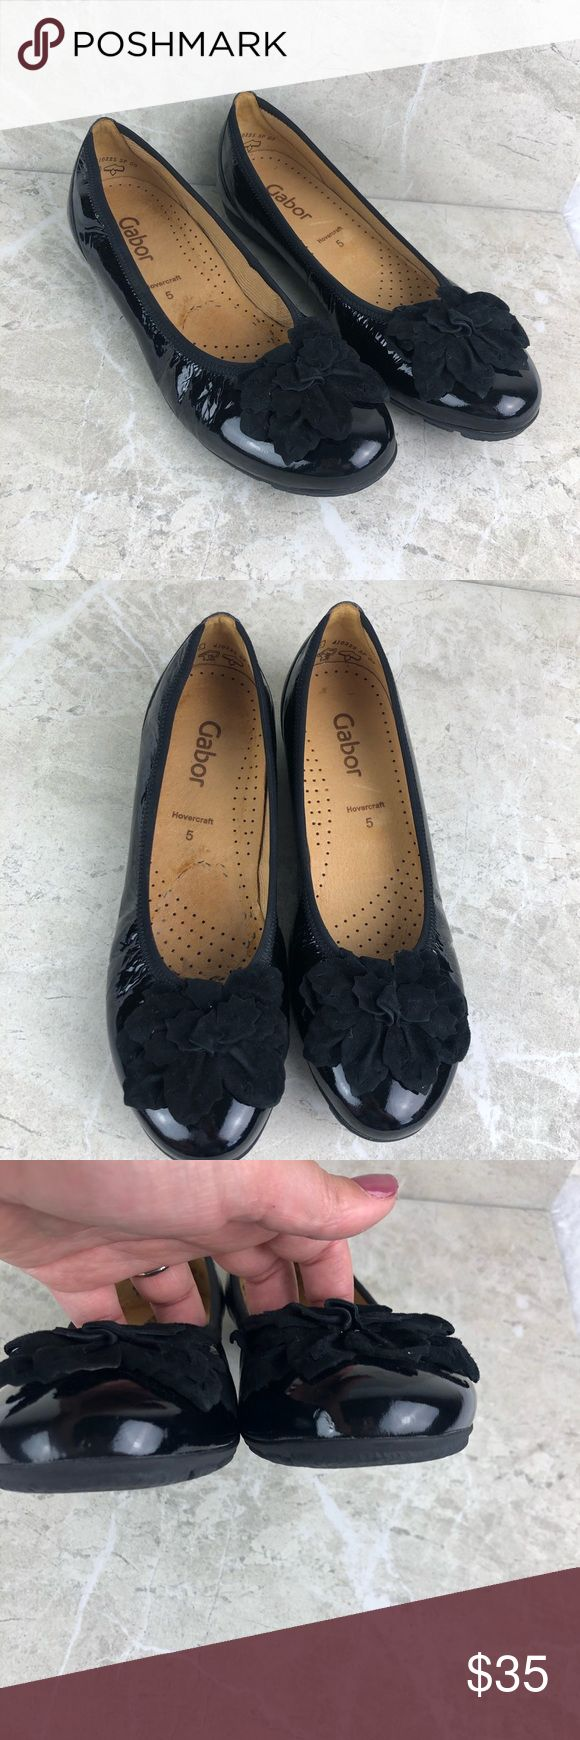 Gabor sacchetto patent leather bow toe flats, sz 7 Gabor sacchetto patent leathe…